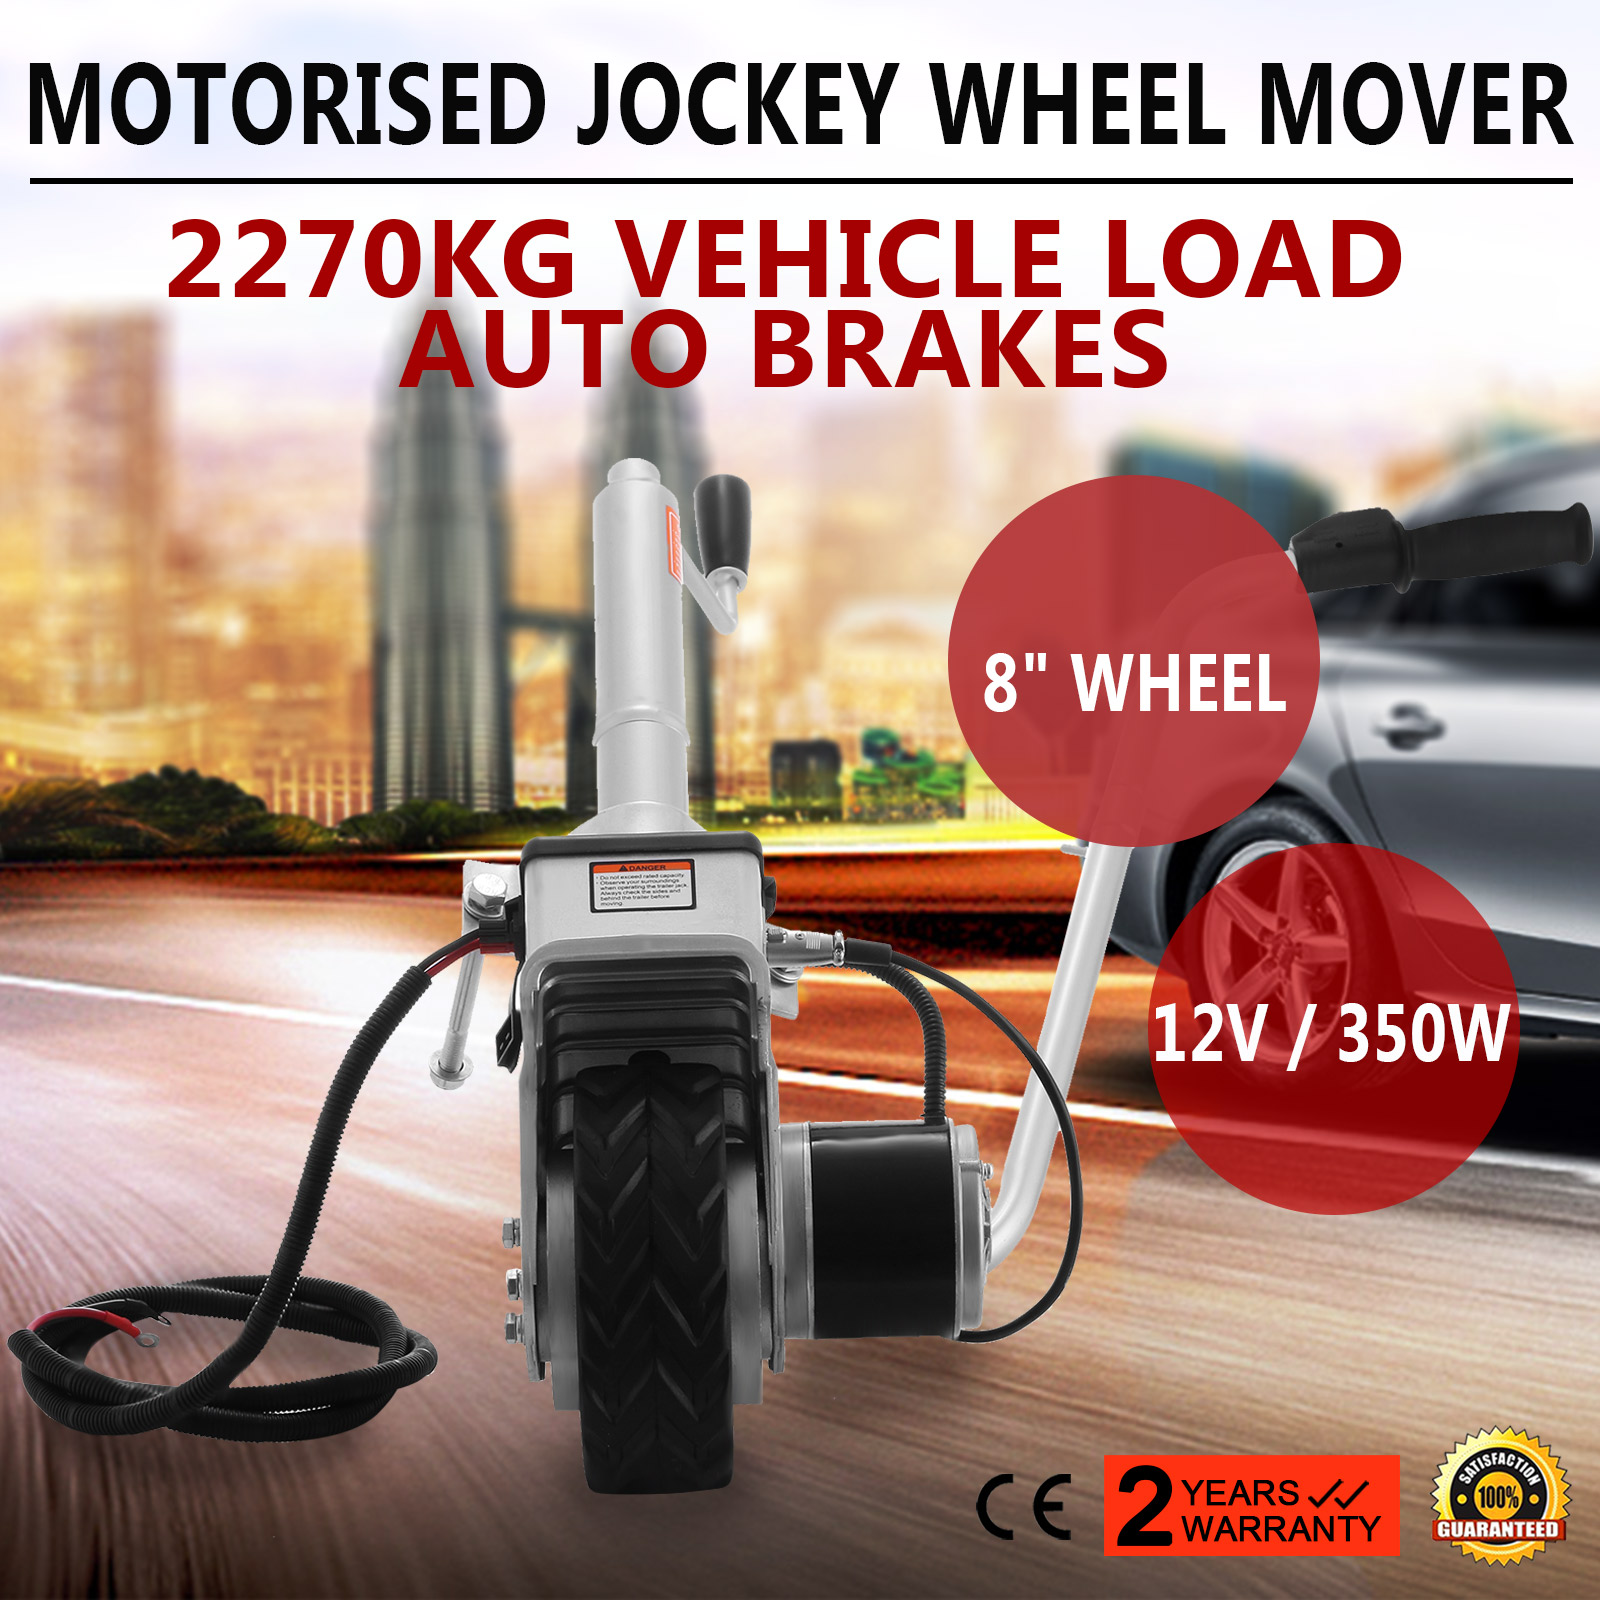 Best Price 5000lbs 12V Trailer Wheel Motorised Jockey Wheel